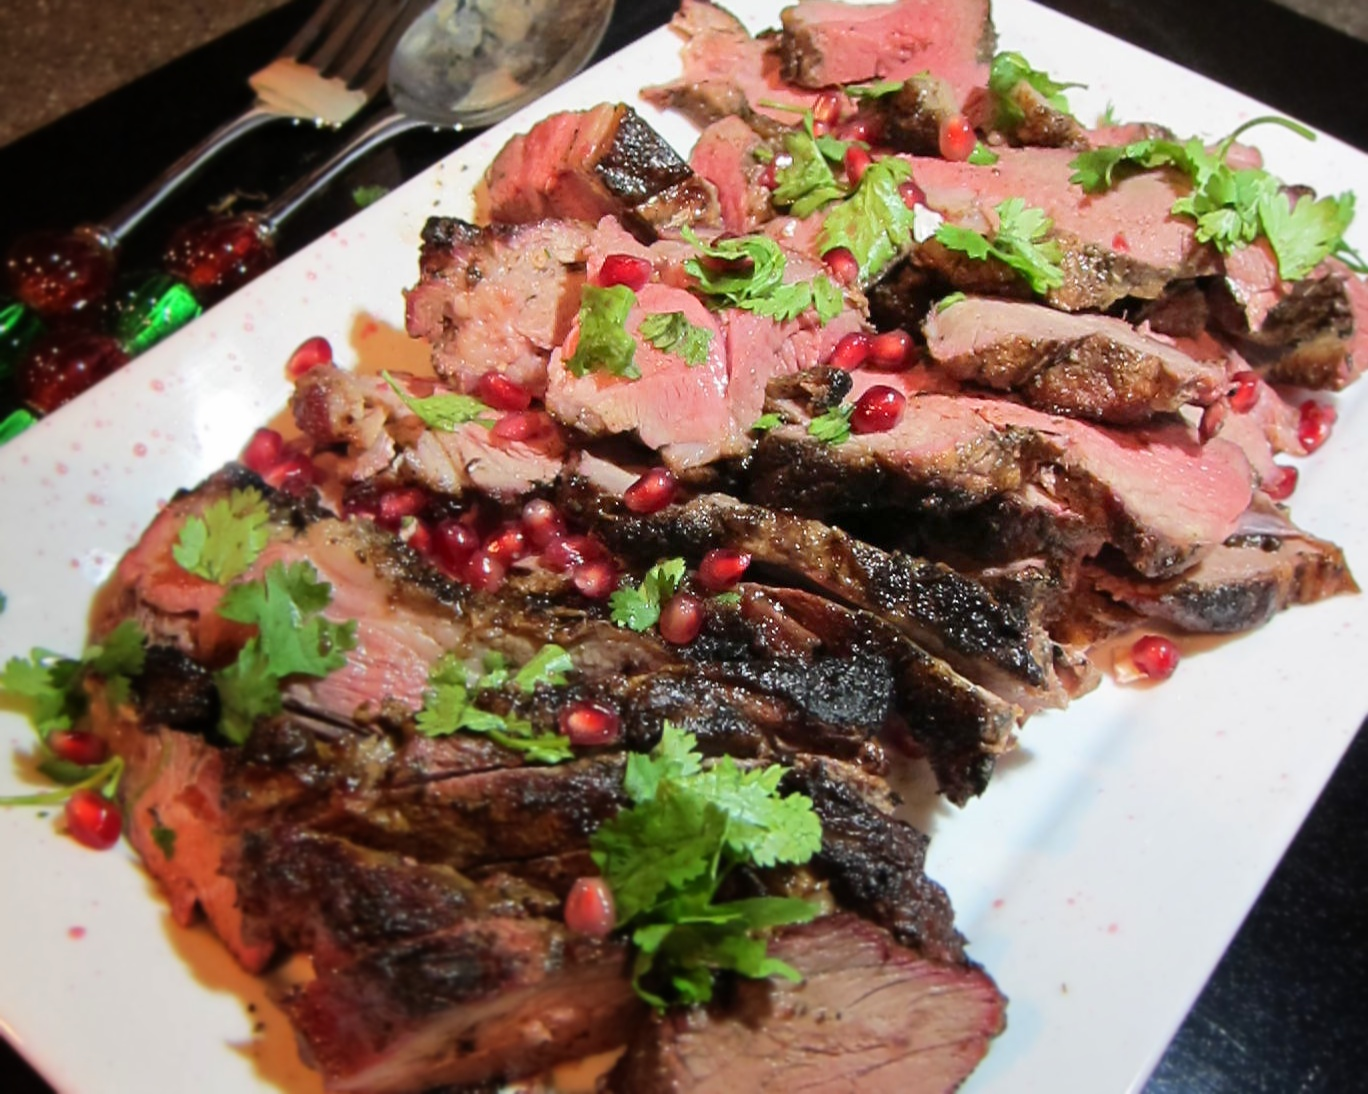 Grilled Butterflied Leg of Lamb | wishing for horses